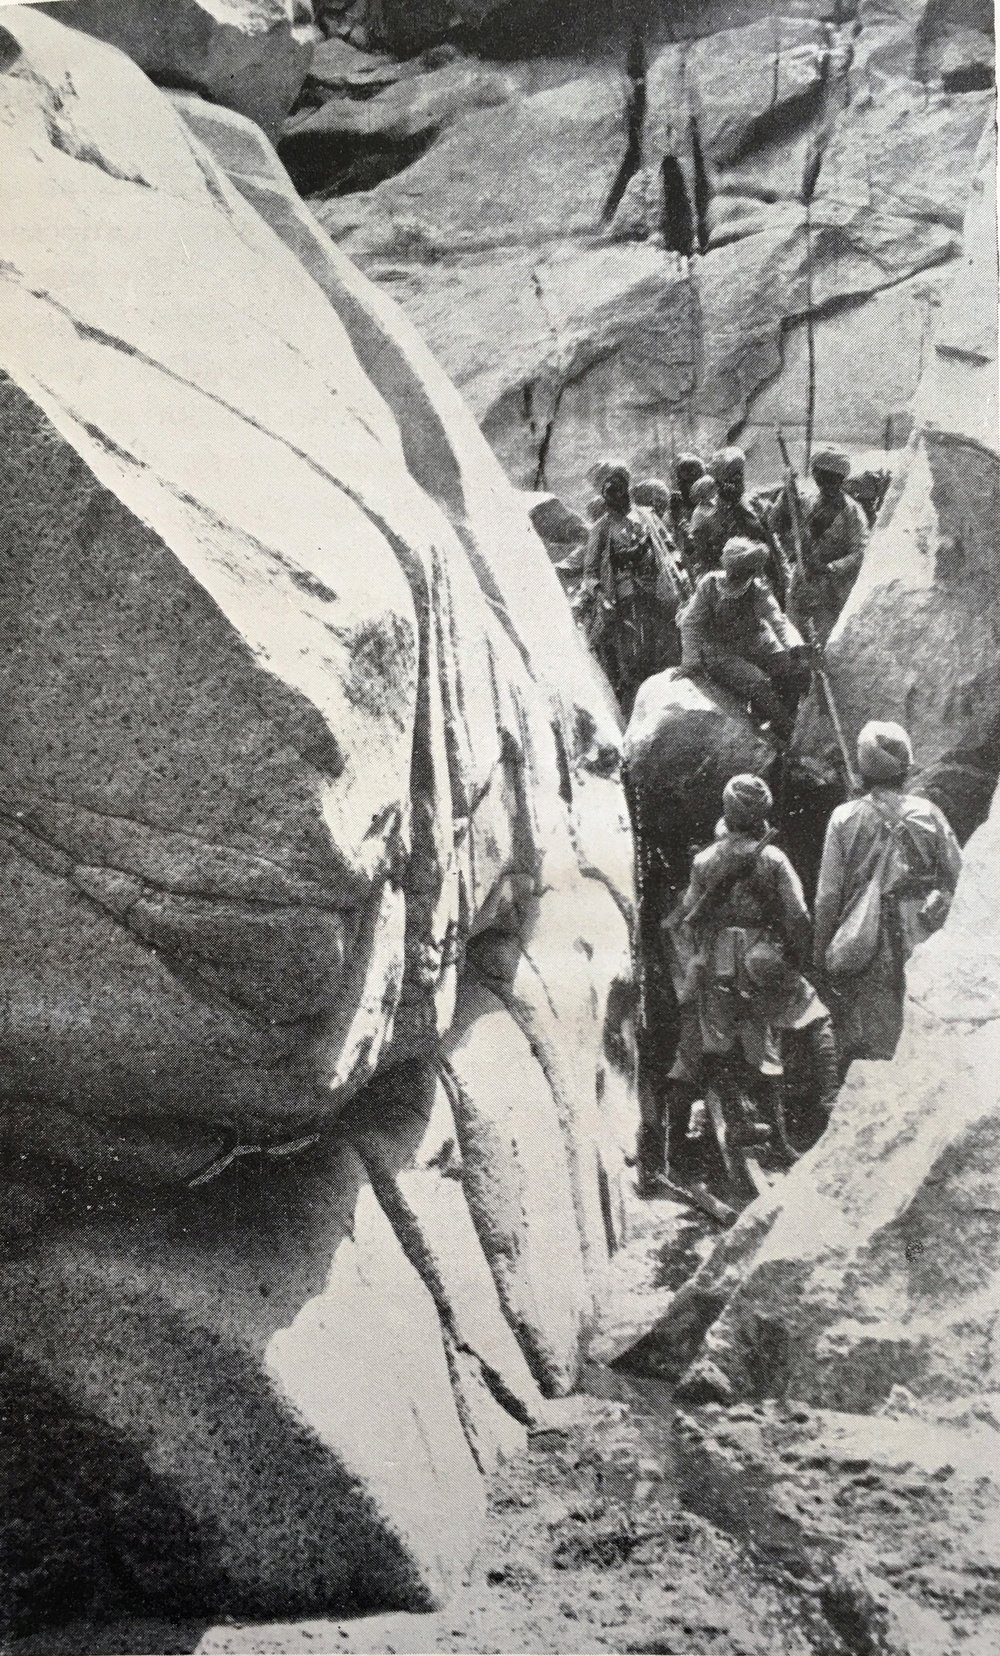 23rd Sikh Pioneers in Sinai, 1916